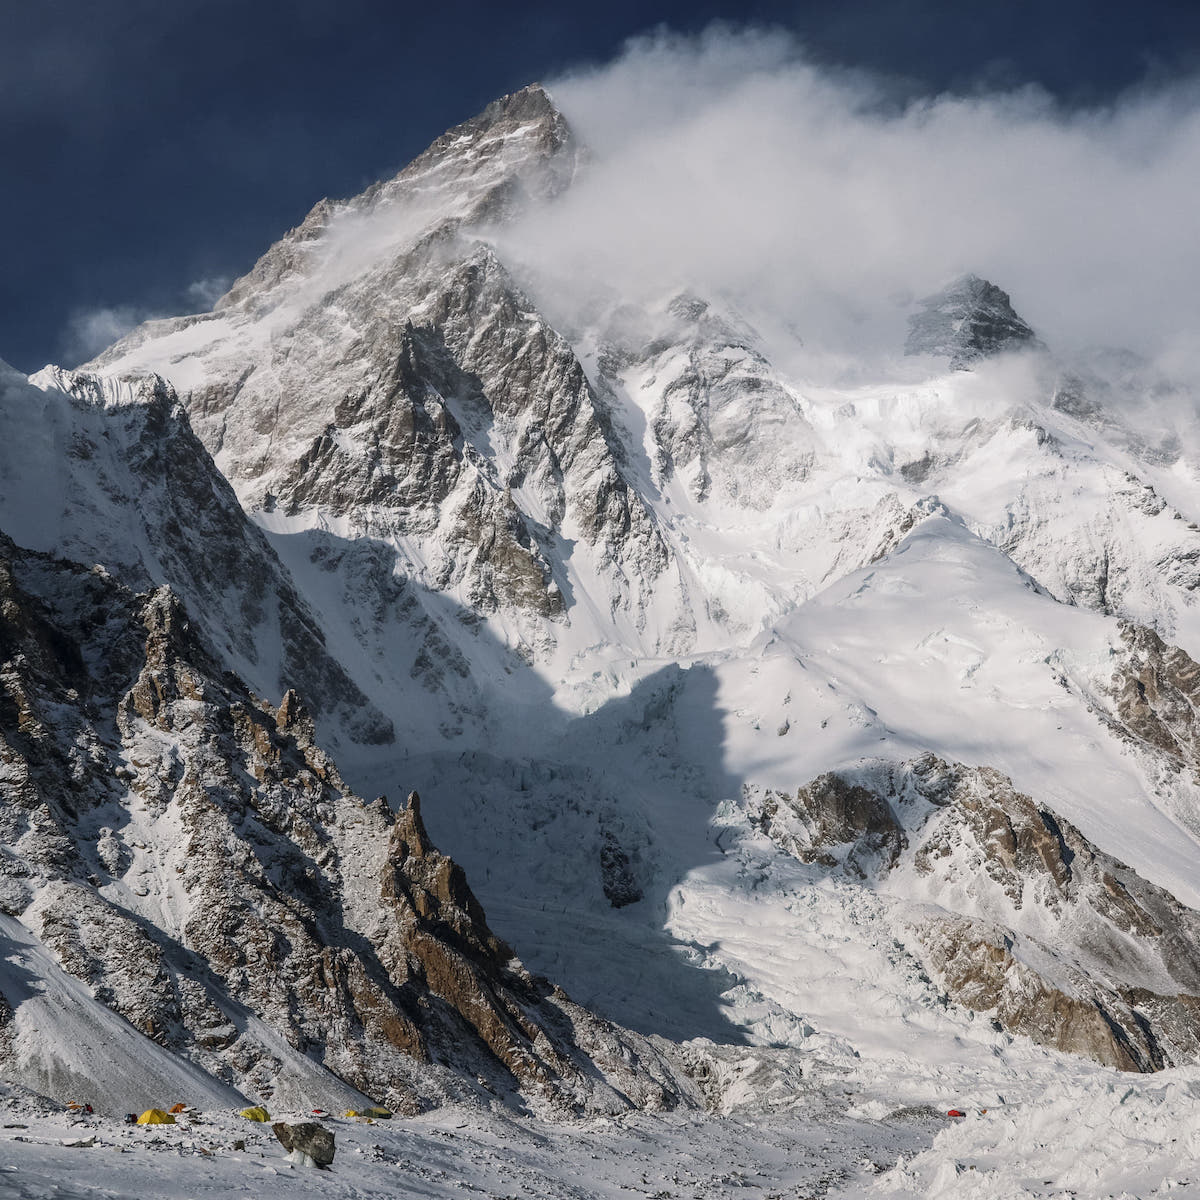 K2 (8611m) looms above base camp on the Godwin Austen Glacier. [Photo] Alex Gavan